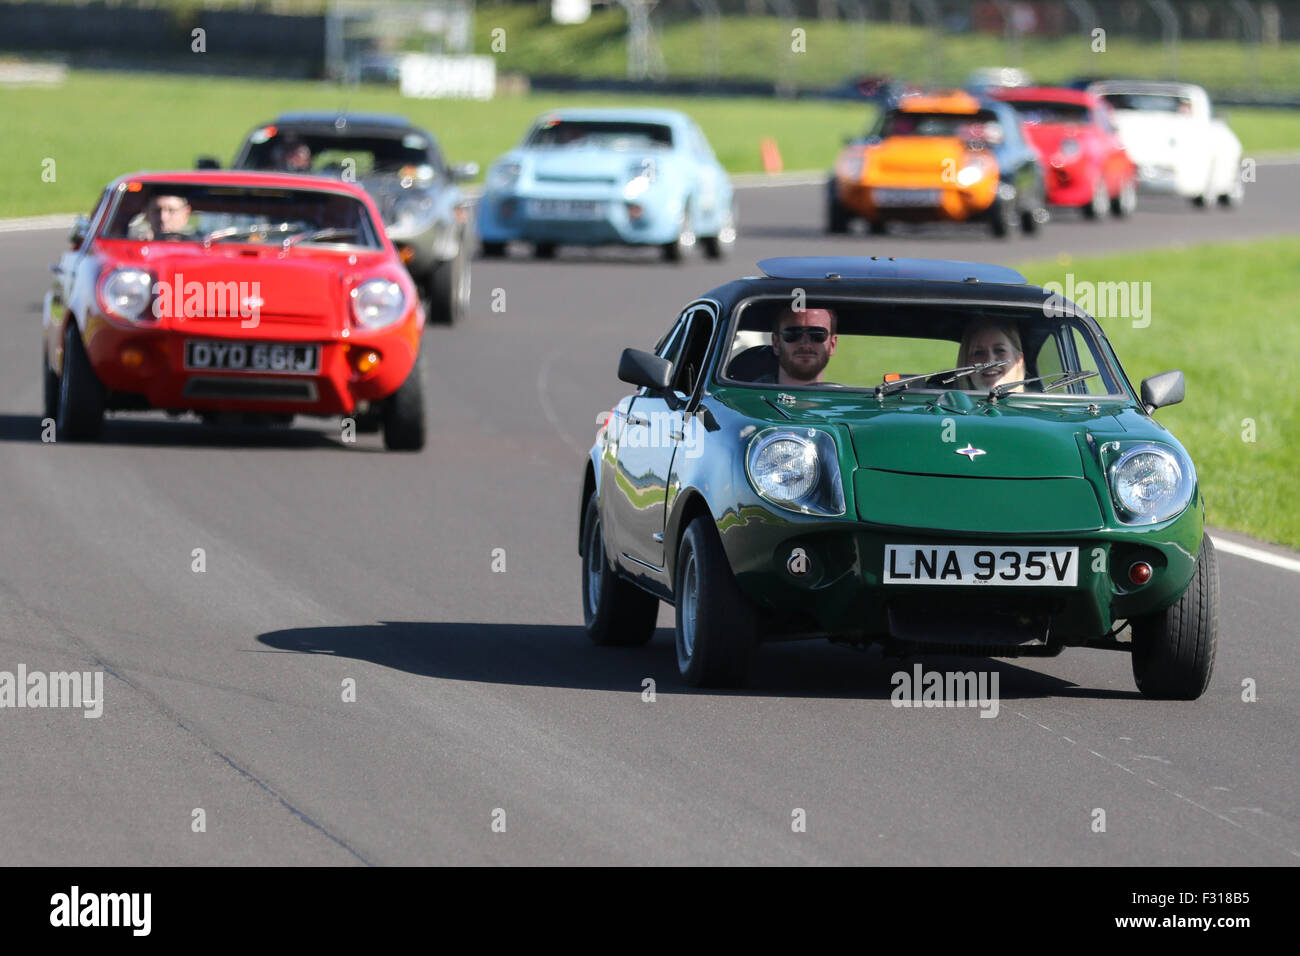 A Mini on track at Castle Combe Circuit Stock Photo: 87924345 - Alamy